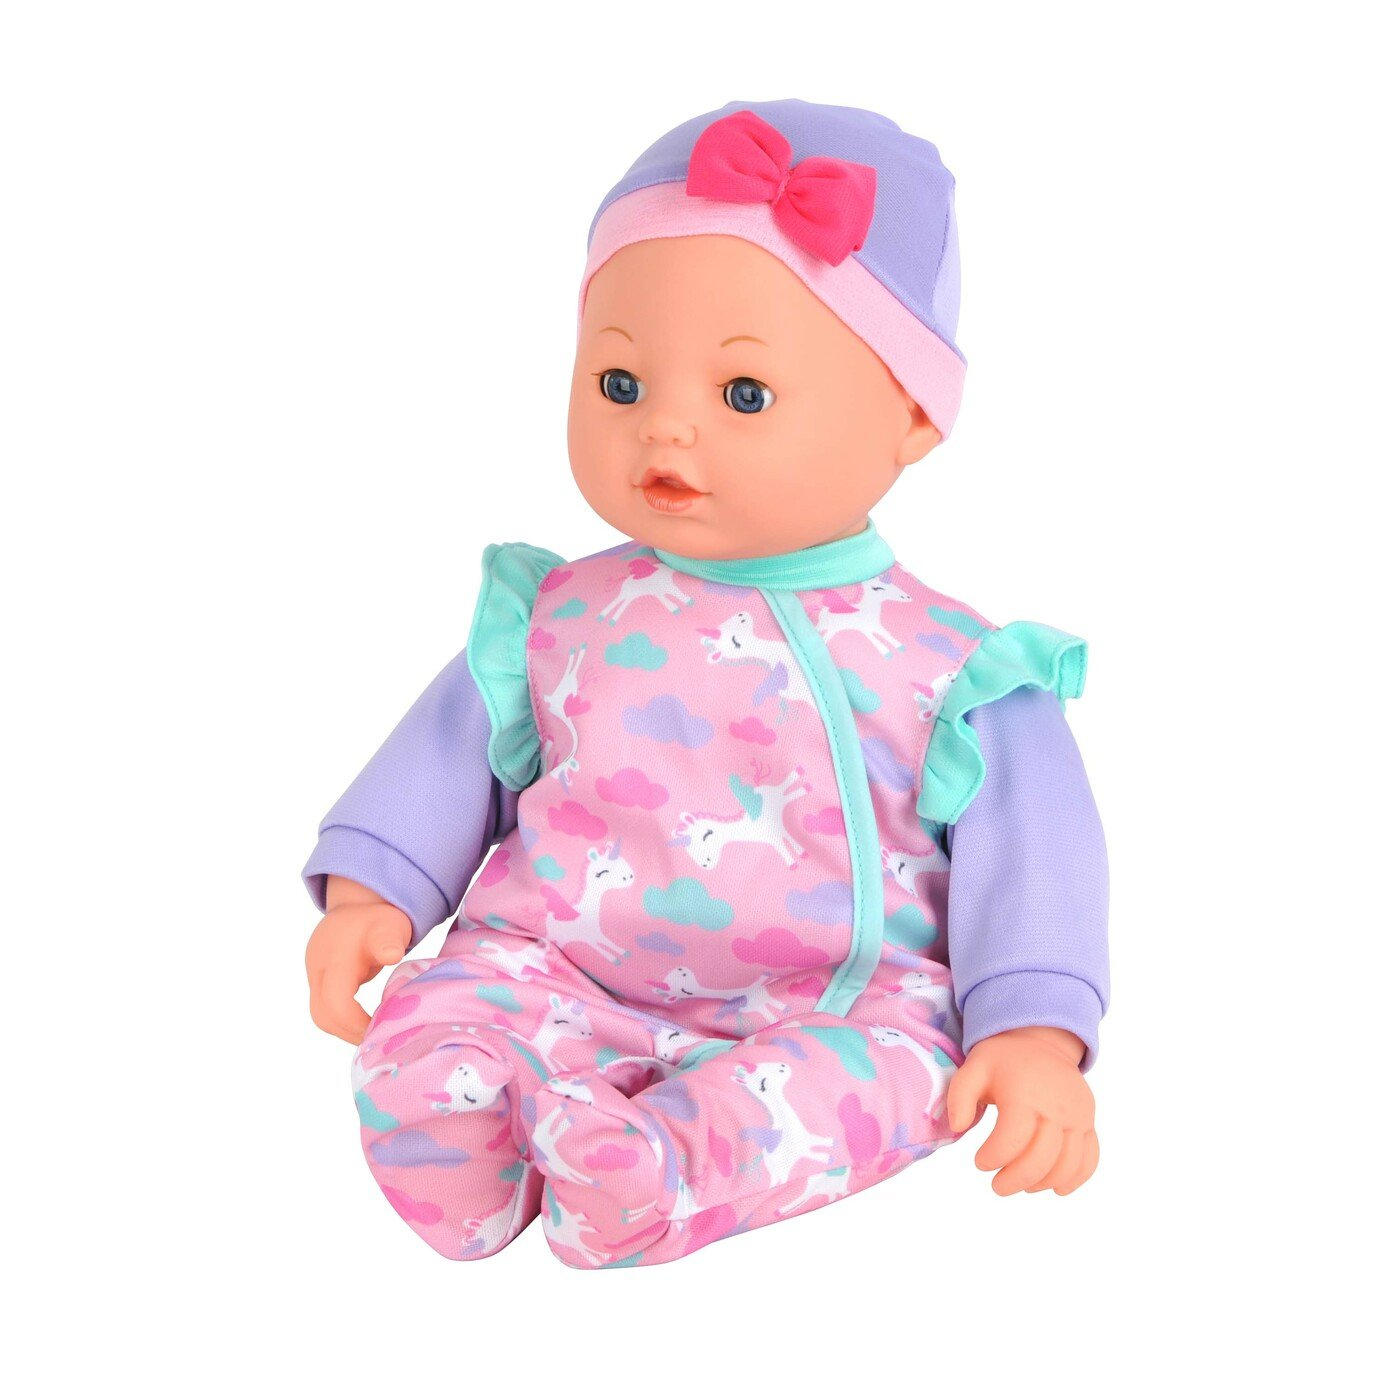 chad-valley-babies-to-love-cuddly-ava-doll